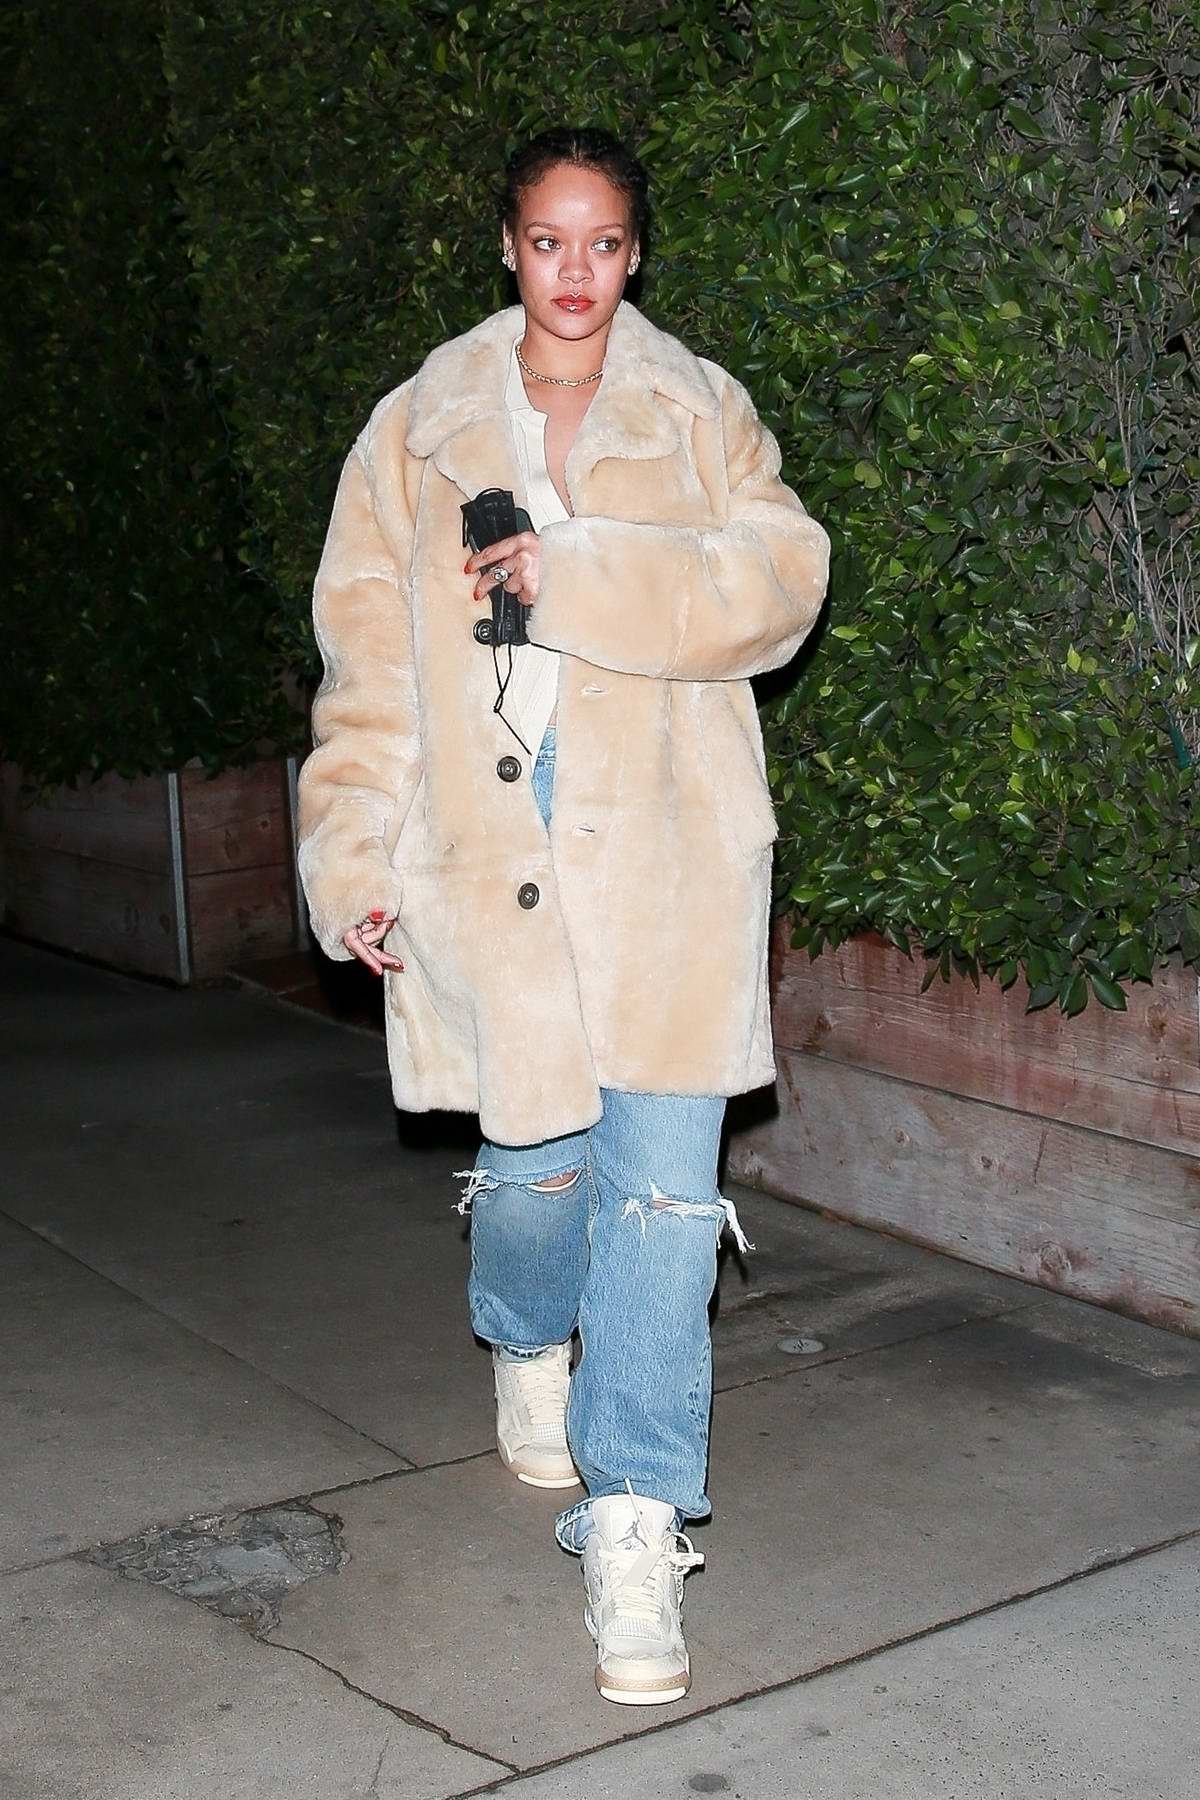 Rihanna looks cozy in a fur coat as she exits Giorgio Baldi after dinner in Santa Monica, California